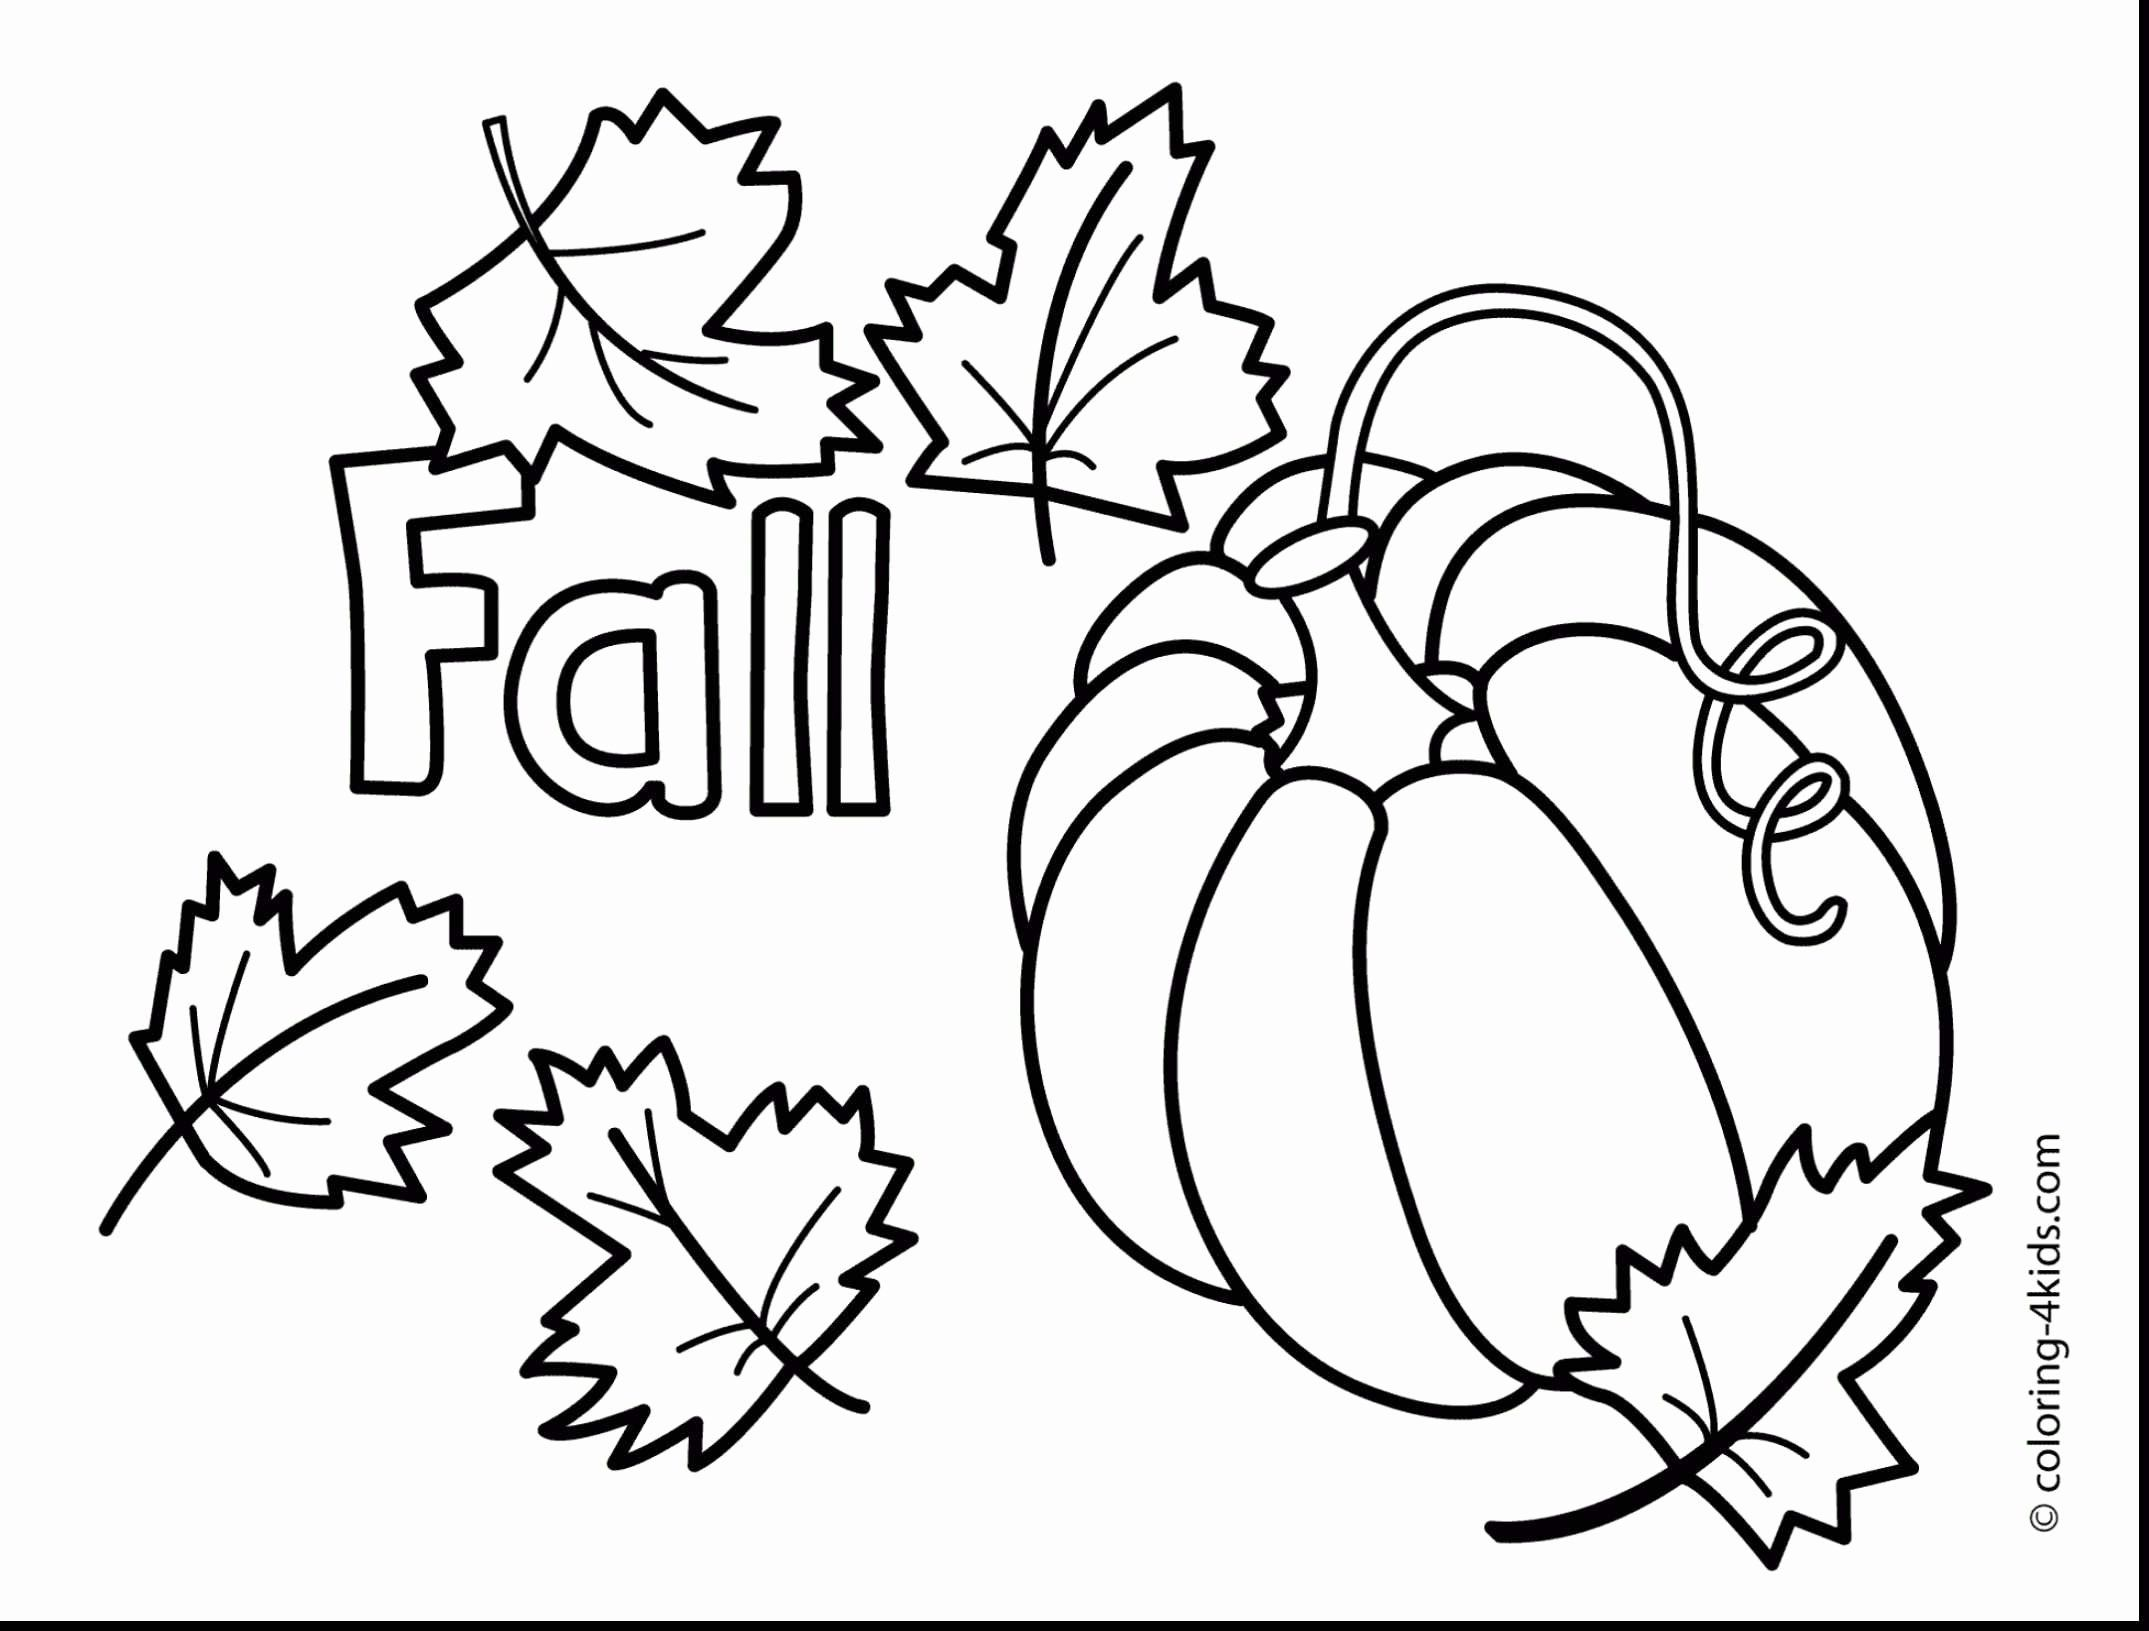 Fall Coloring Pages For Young Children Free Instant Download Fall Coloring Sheets Fall Leaves Coloring Pages Leaf Coloring Page